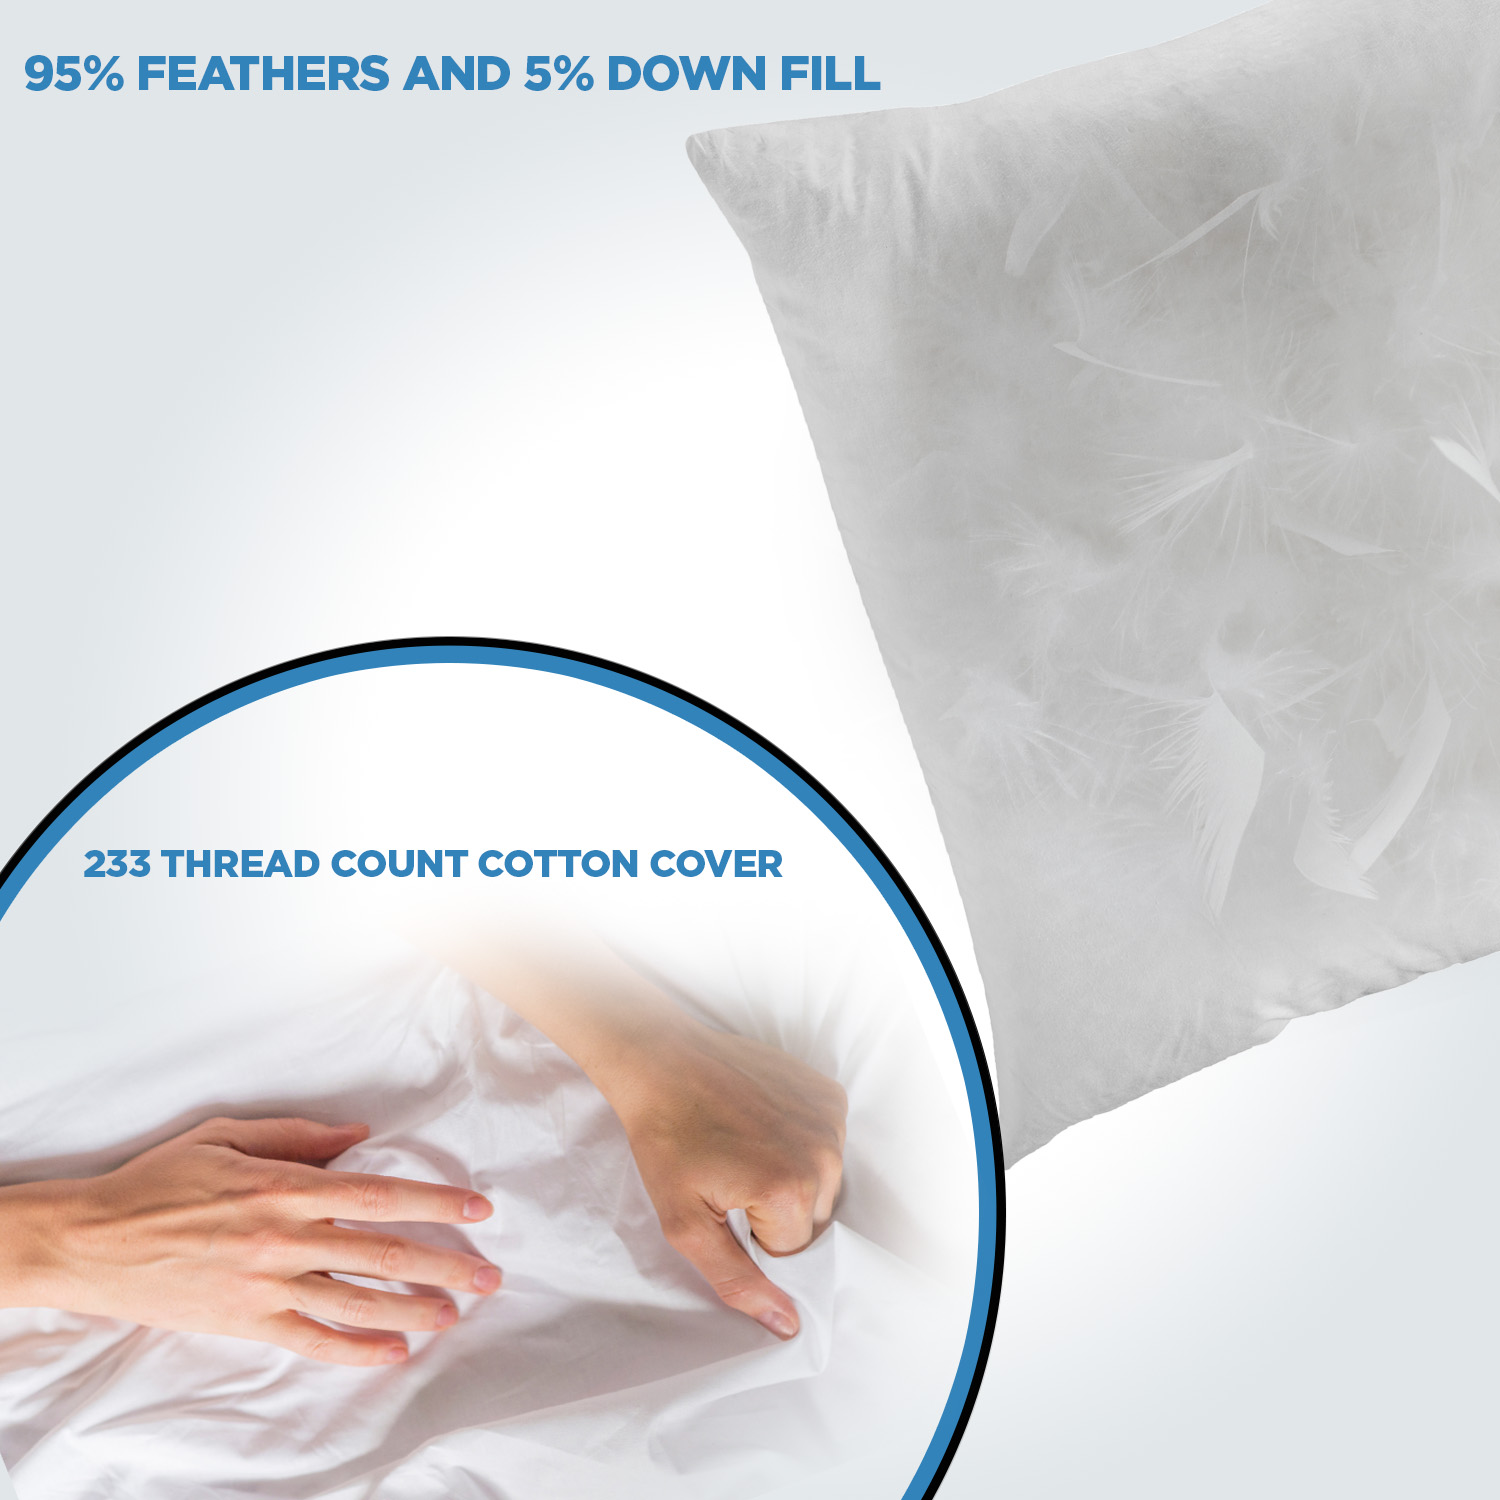 comfydown 95 feather 5 down 14 x 30 rectangle decorative pillow insert sham stuffer made in usa